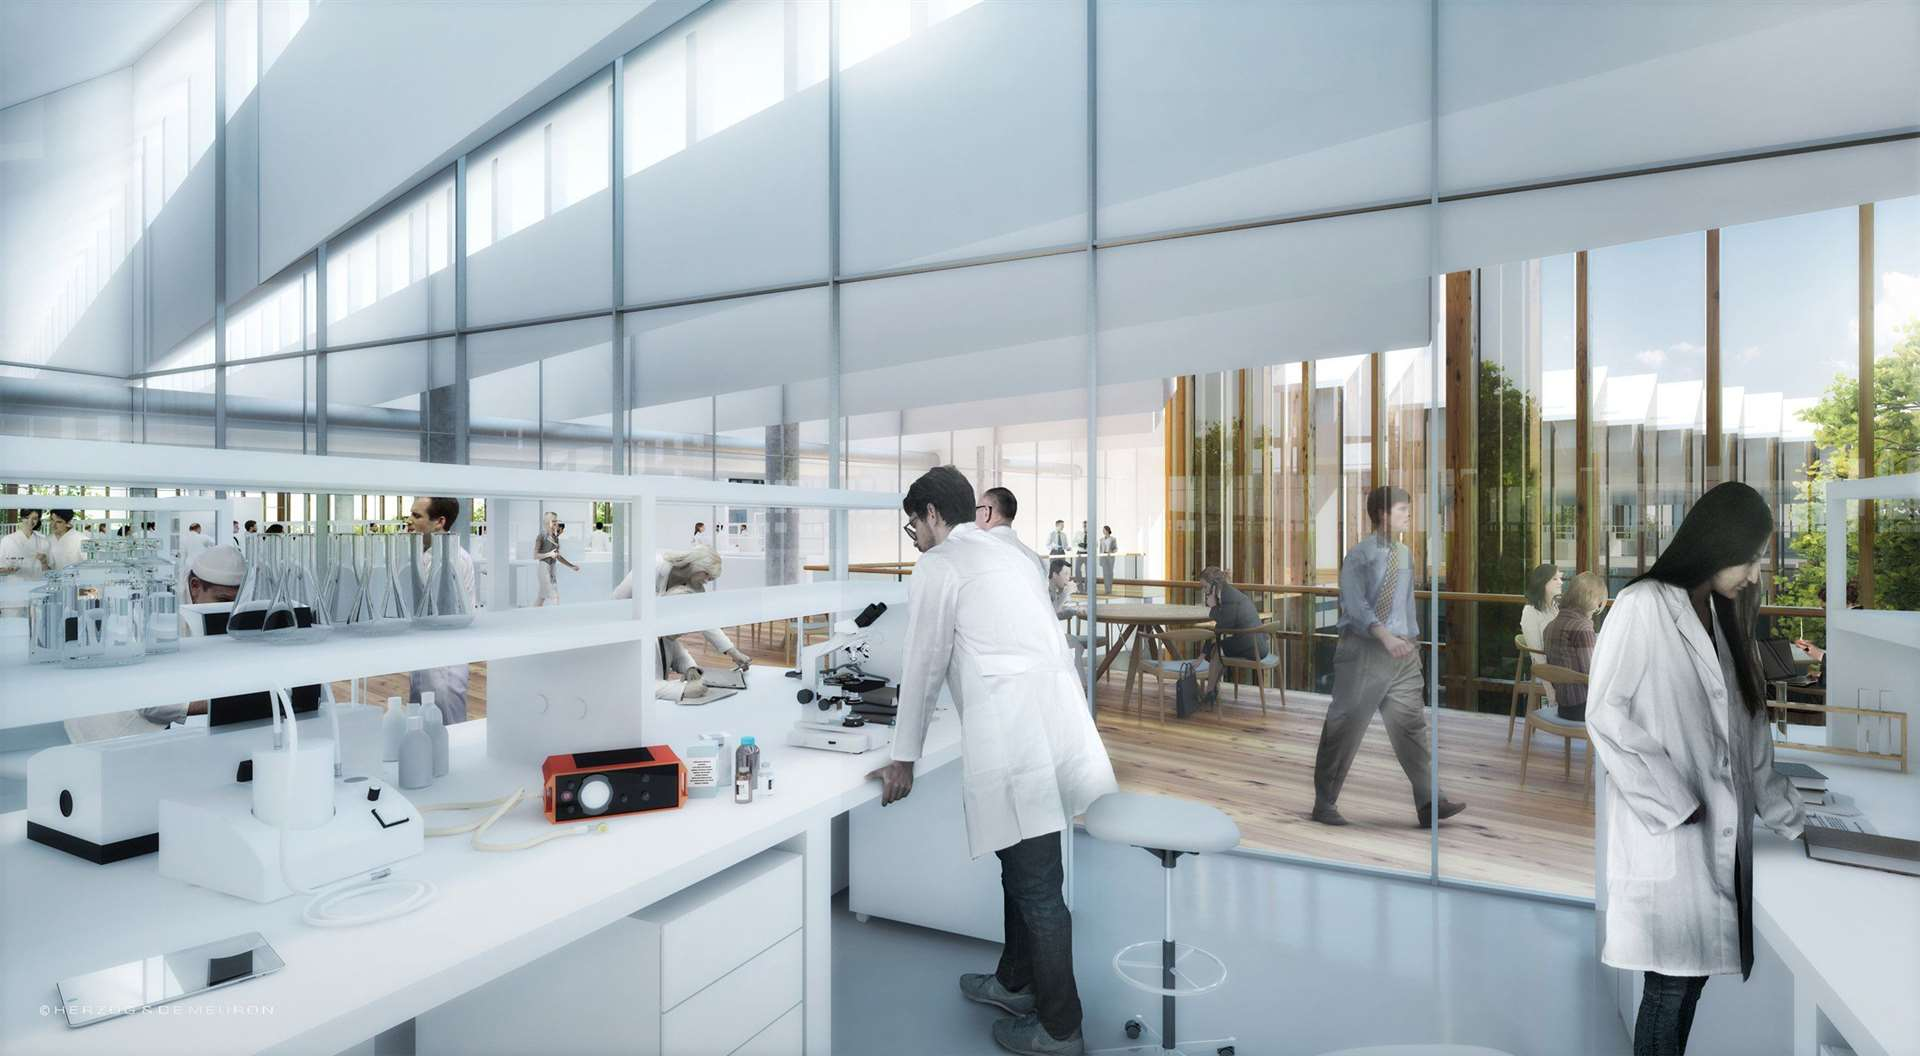 Concept drawing of second floor lab at AstraZeneca in Cambridge. (26269494)